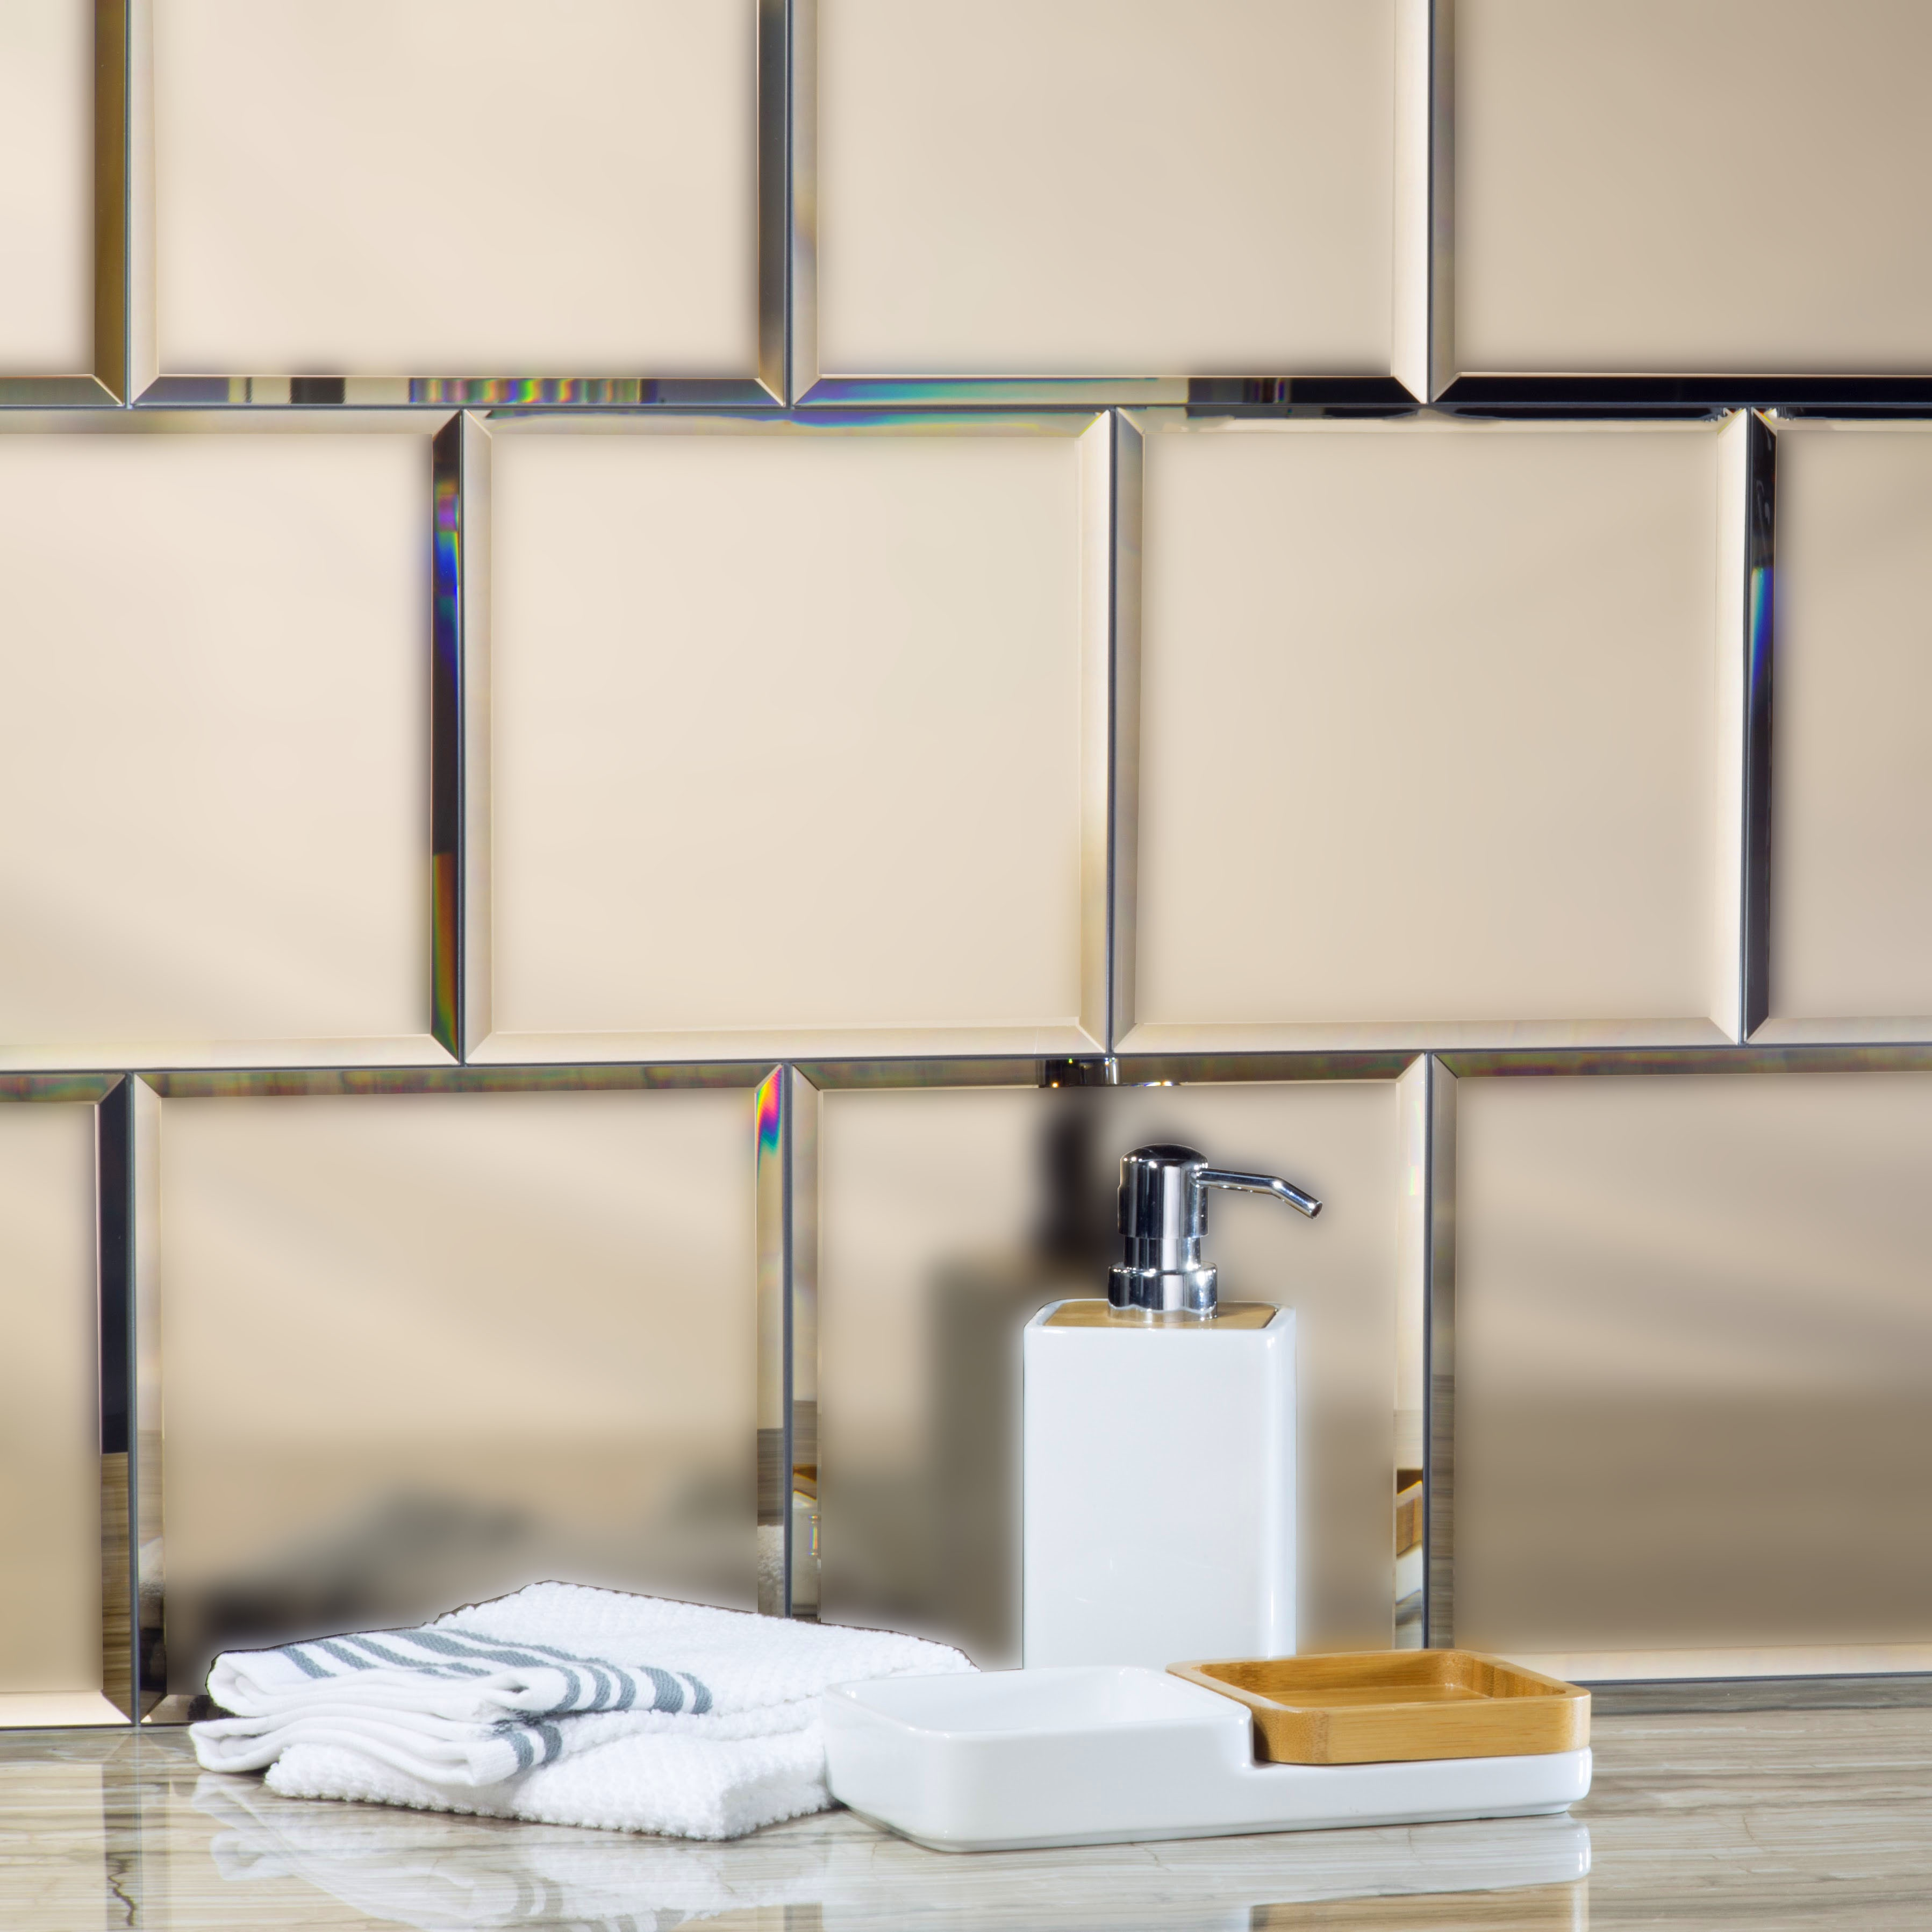 "Reflections 8"" x 8"" Matte Gold Mirror Field Backsplash Wall Tile"